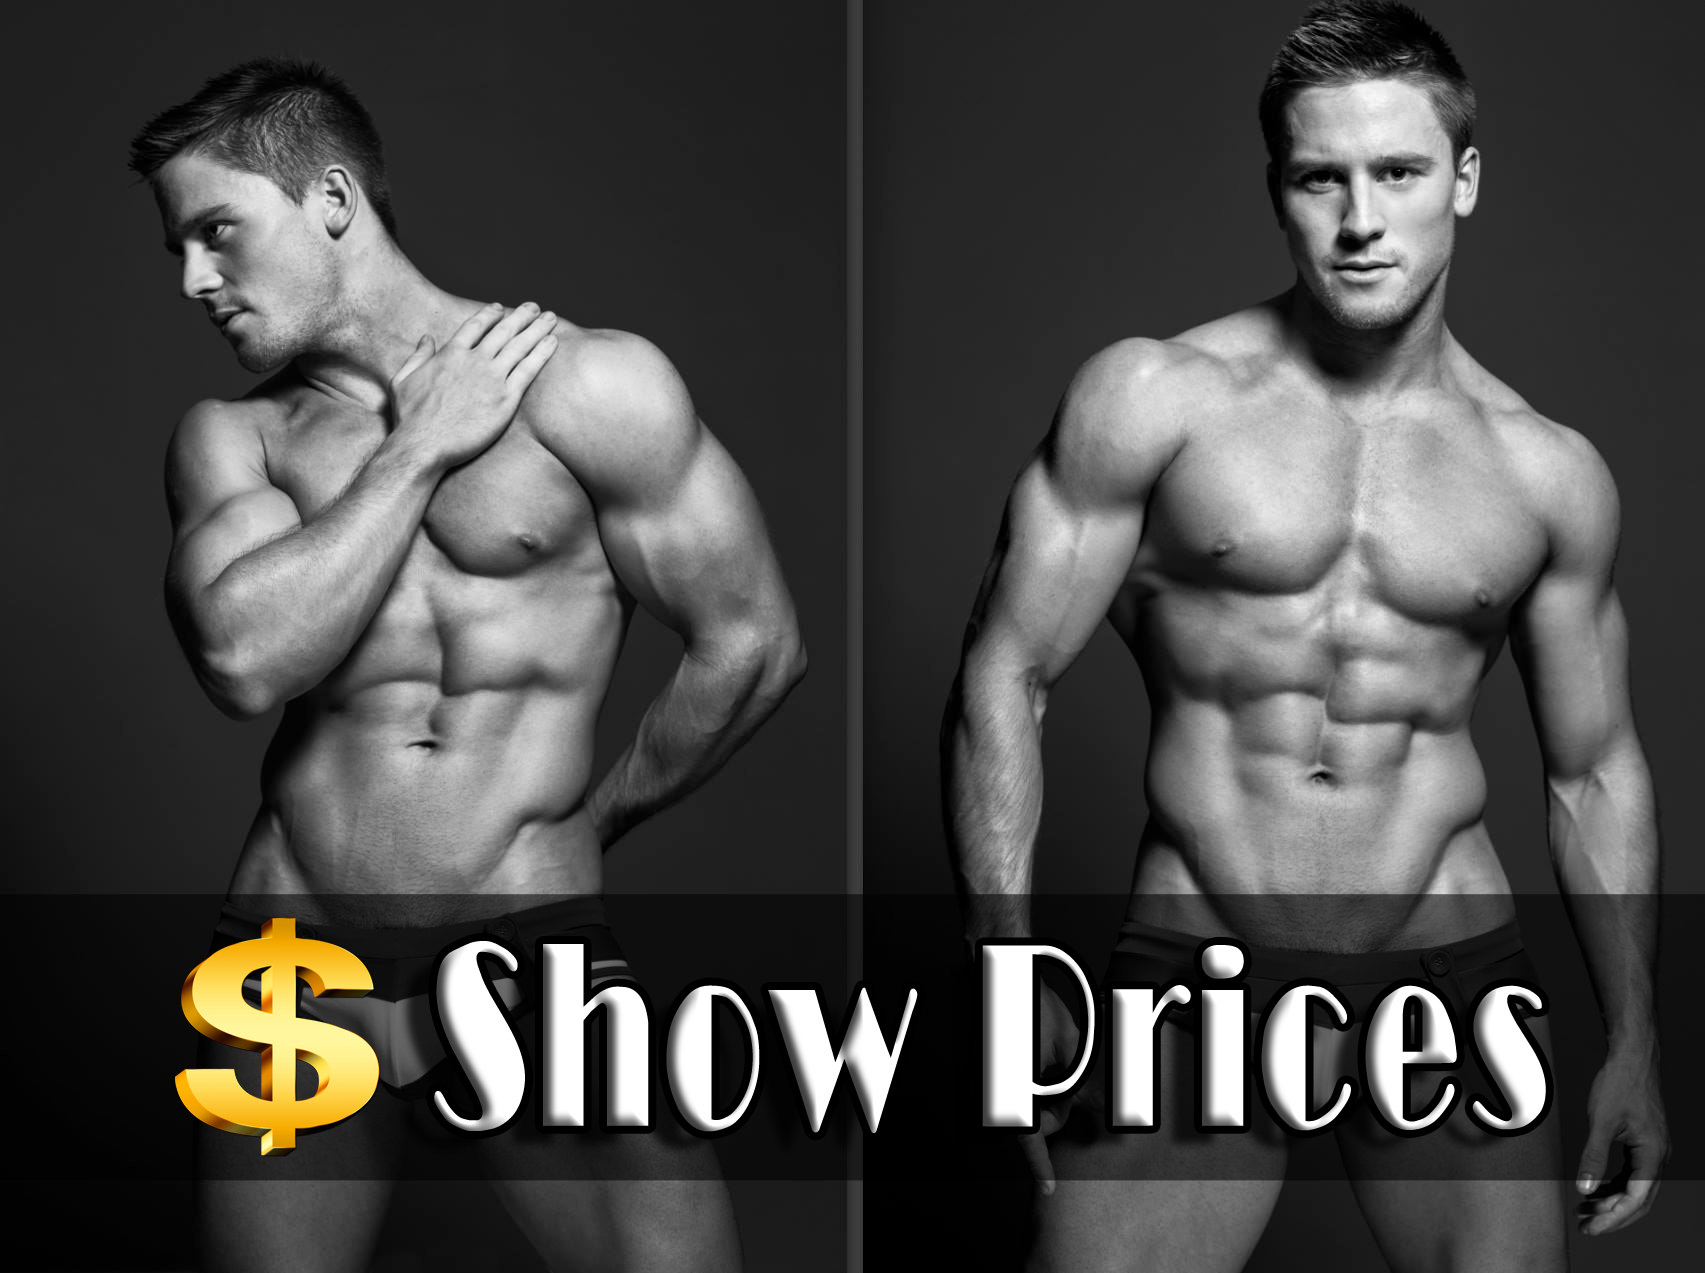 male STRIPERS for hens night available in the gold coast brisbane and byron bay. check out all our show pricing now